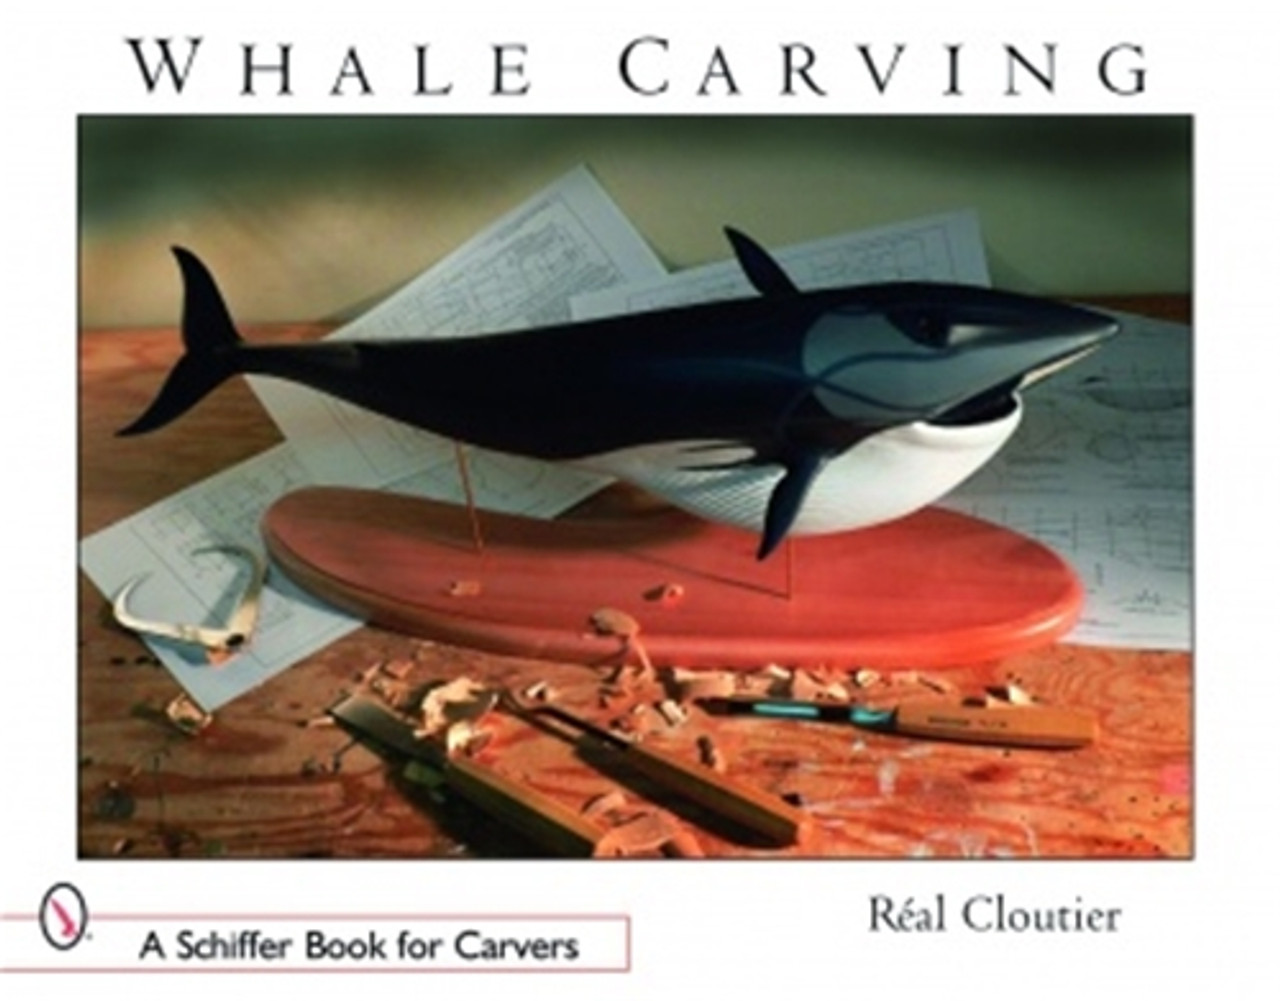 Whale Carving By Real Cloritier